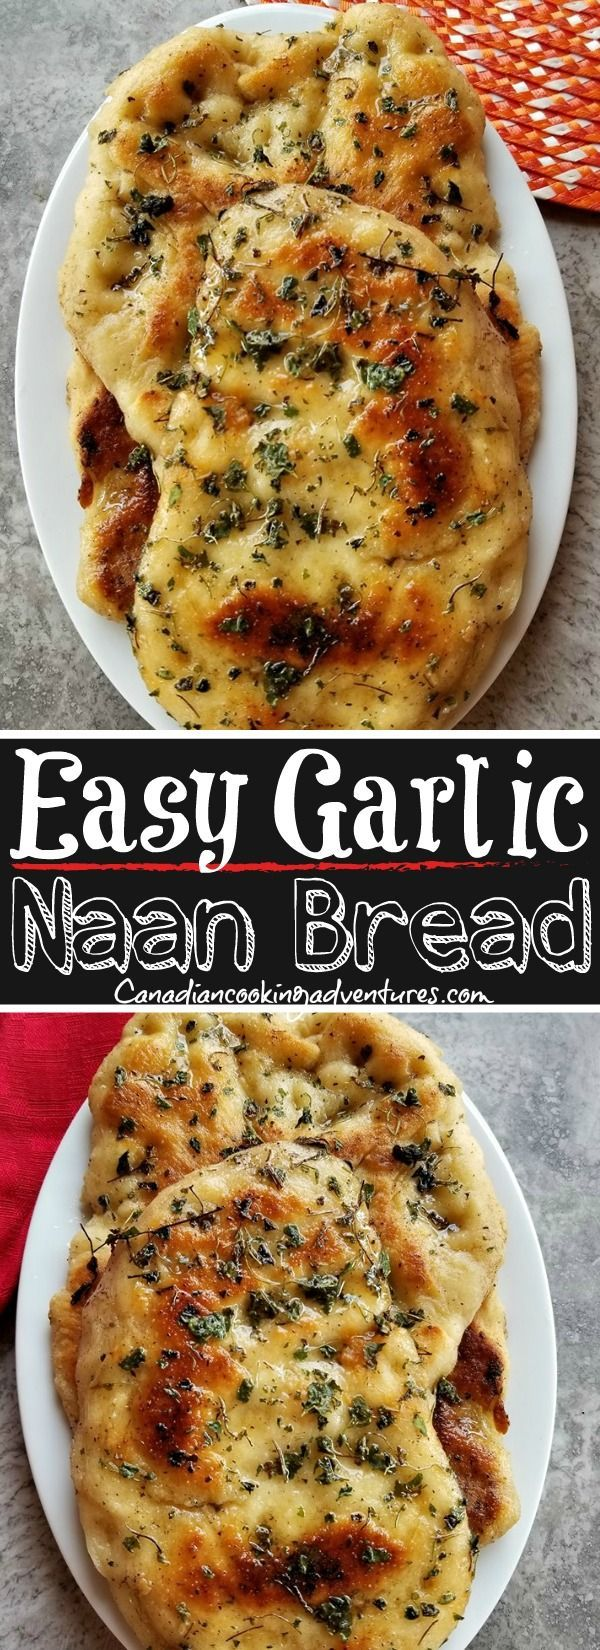 This quot;Easy Garlic Naan Bread Recipe quot; will have you eating the best Indian food at home in